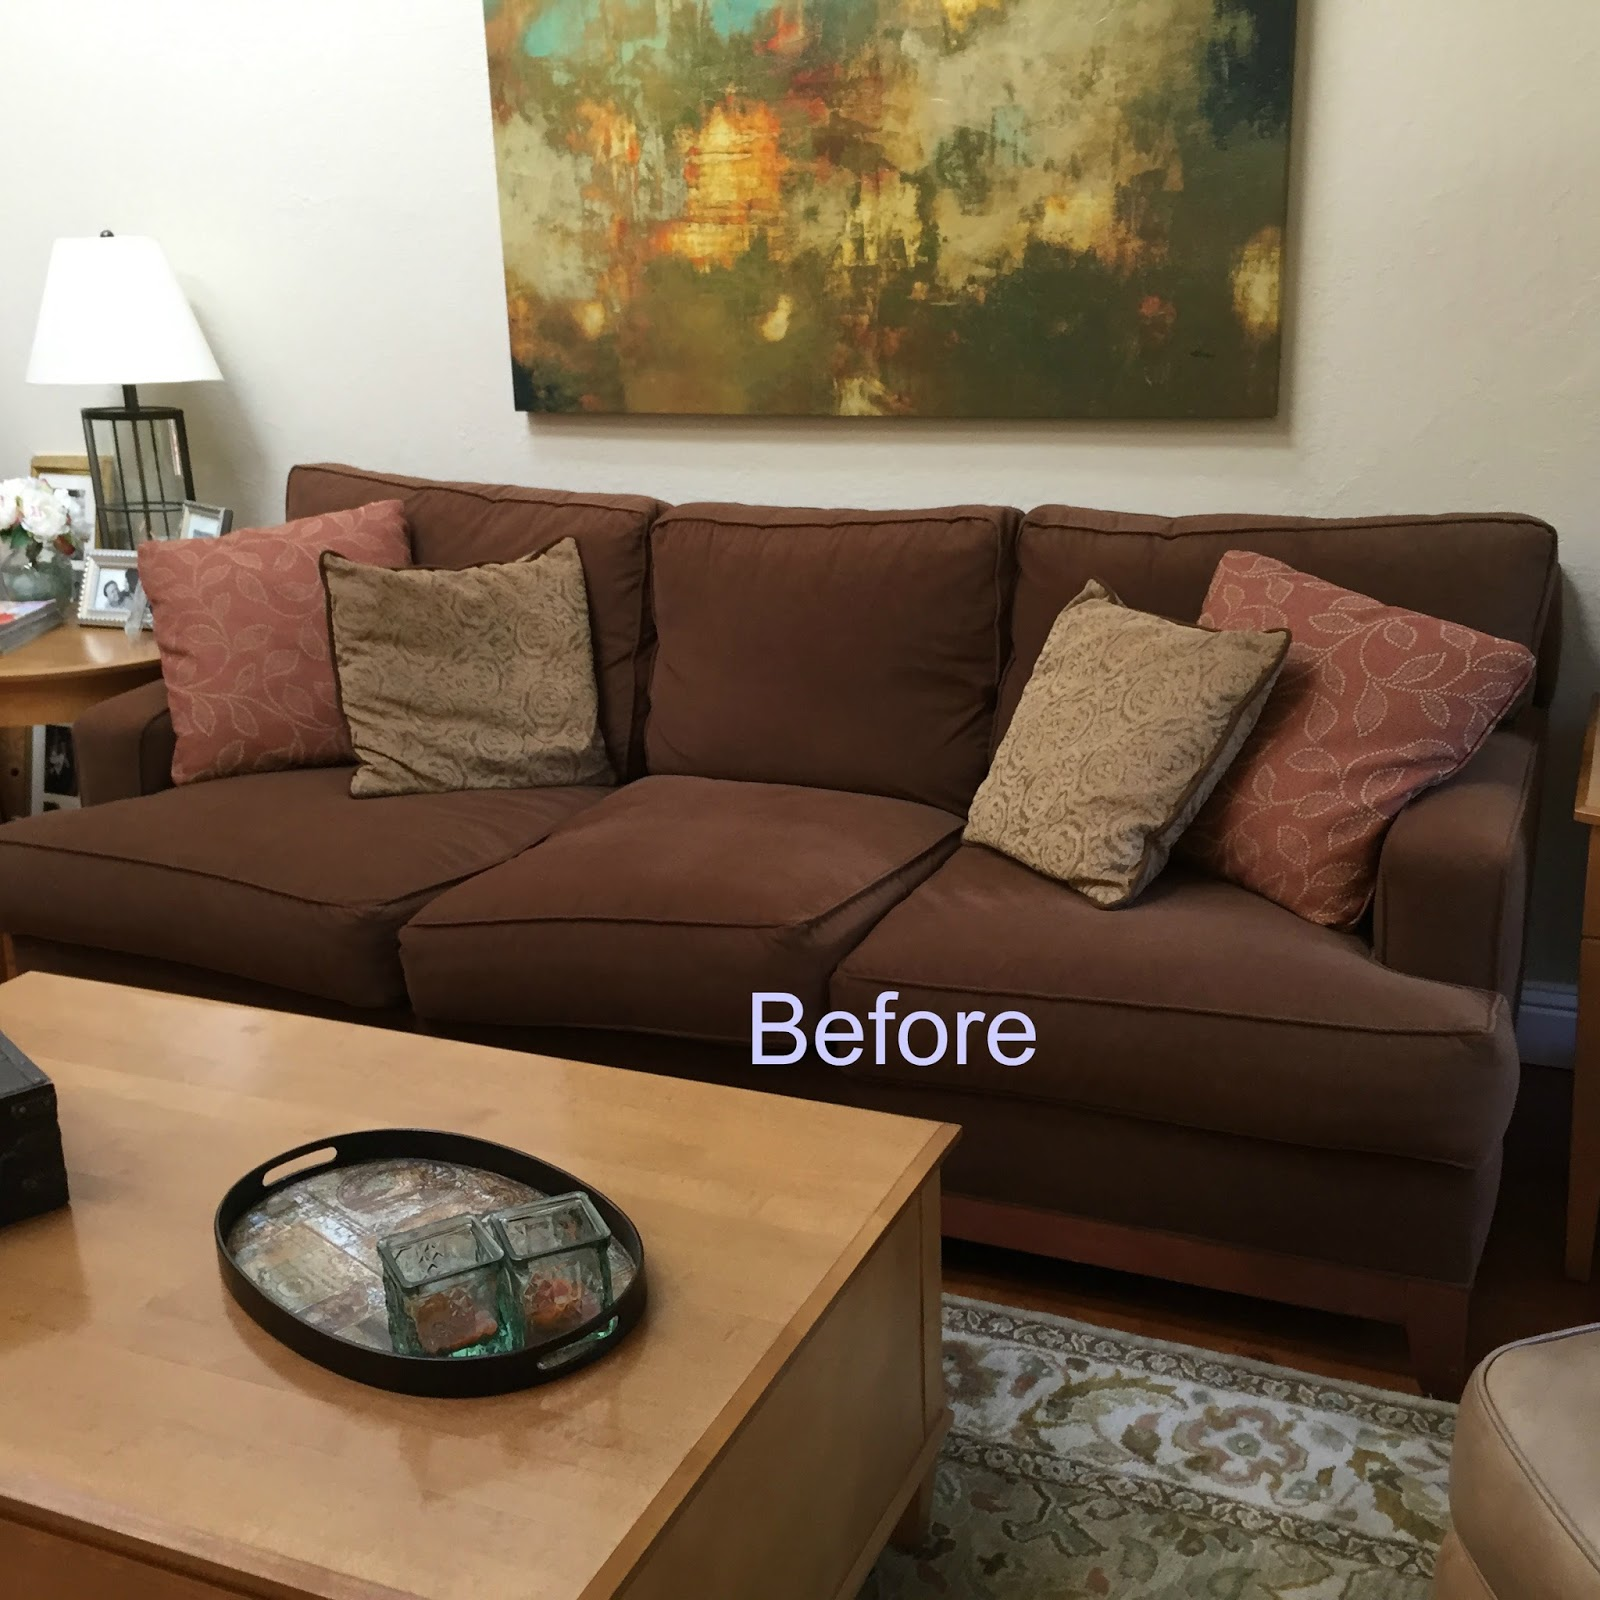 classic • casual • home Brown Couch Blues Mini Makeover Before and After